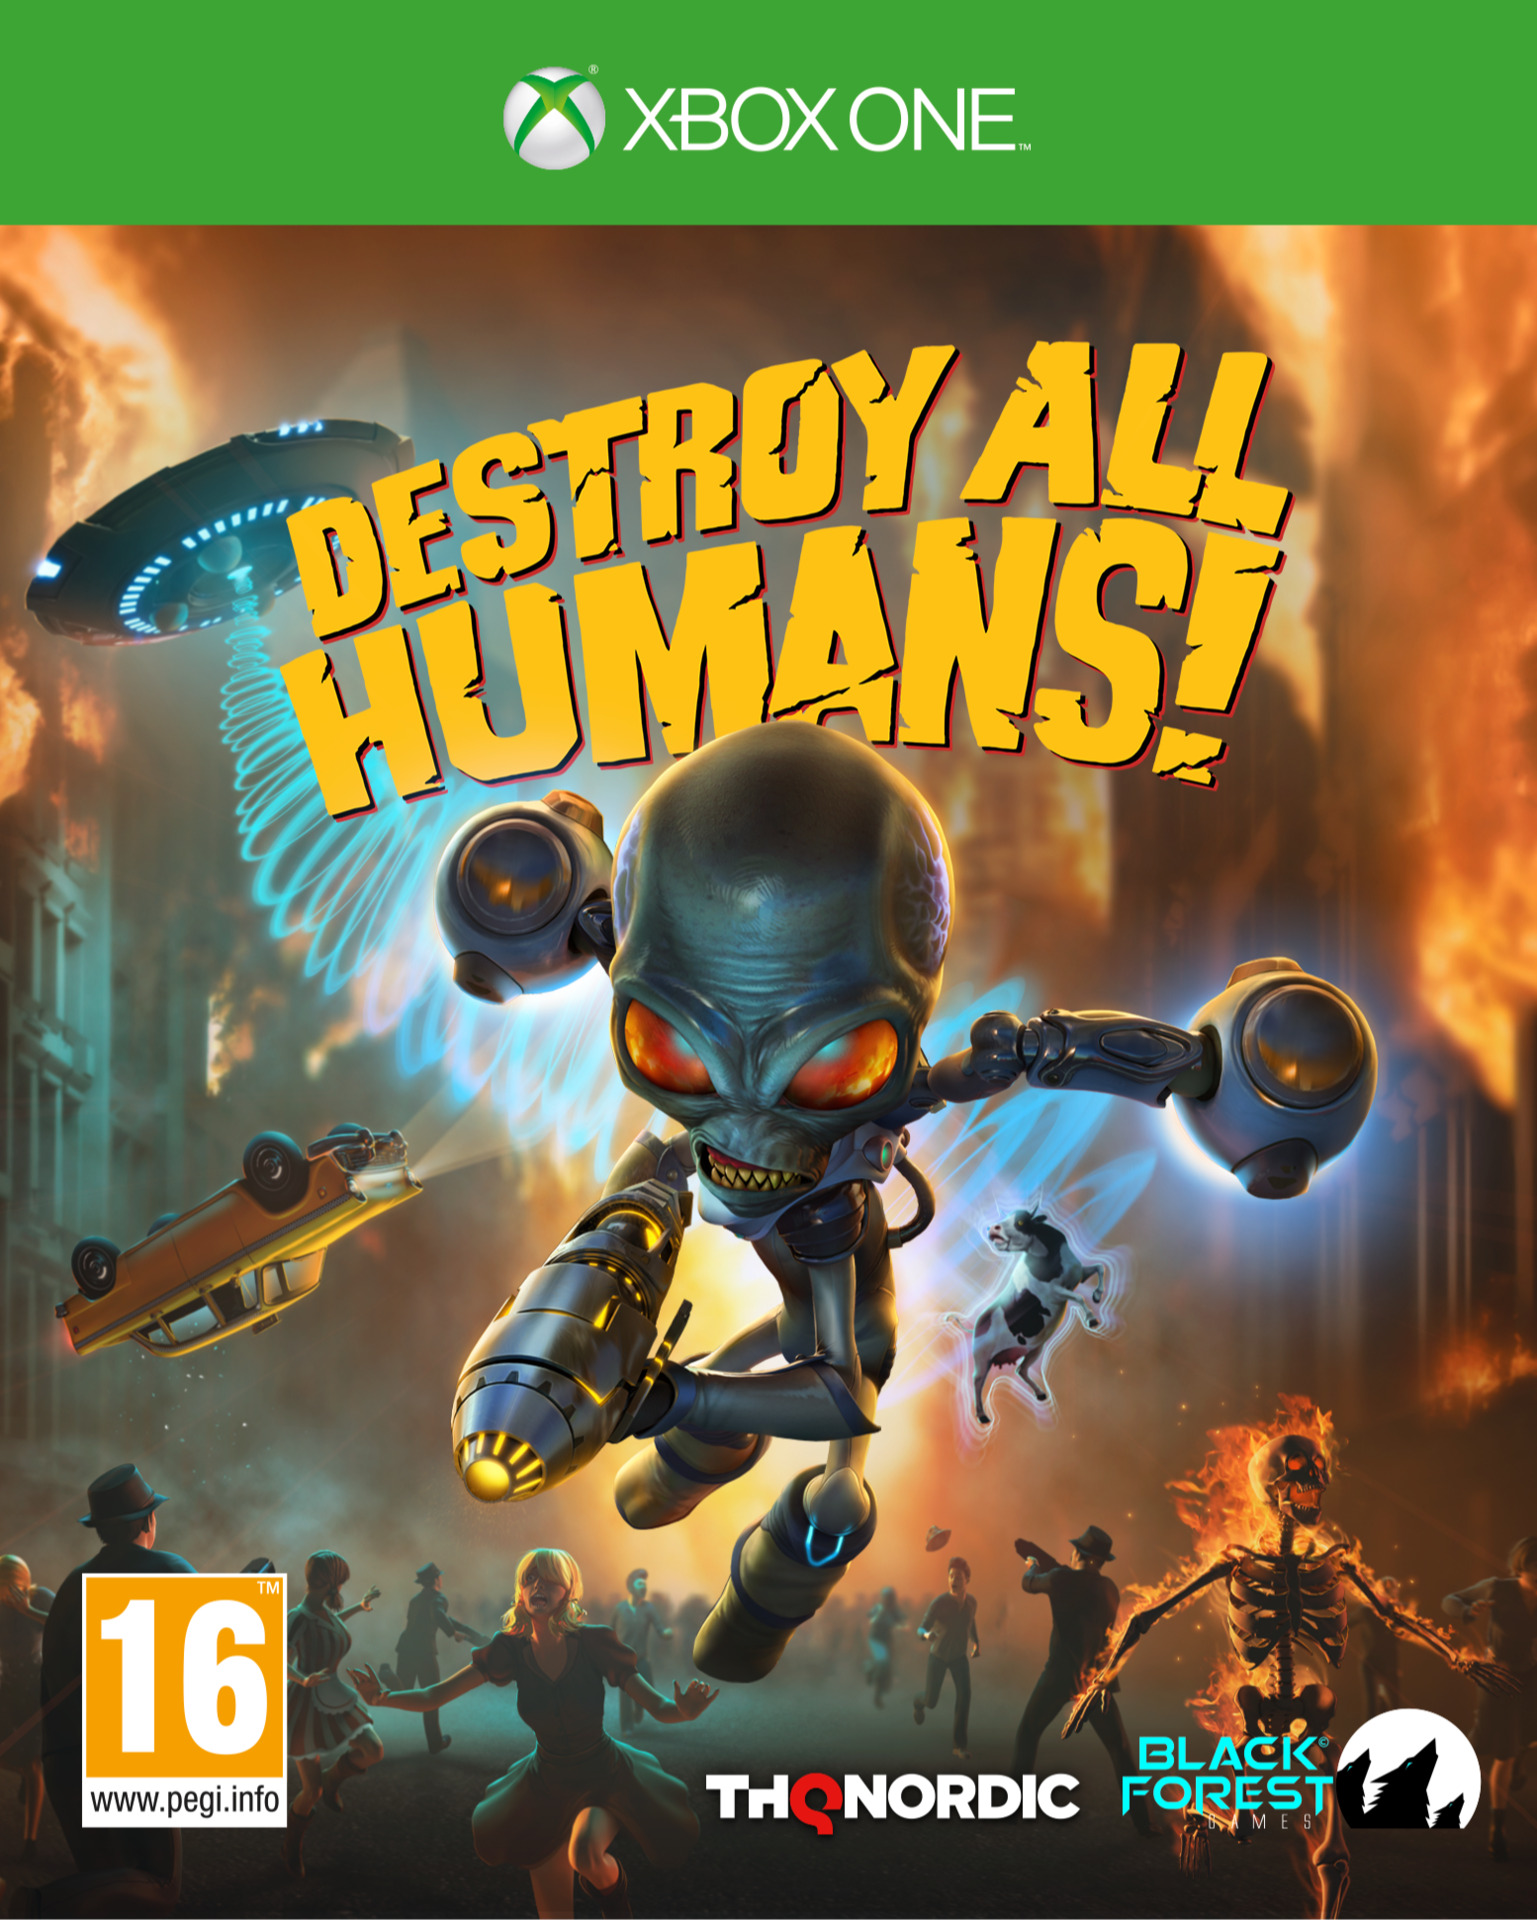 Destroy All Humans! (XONE)